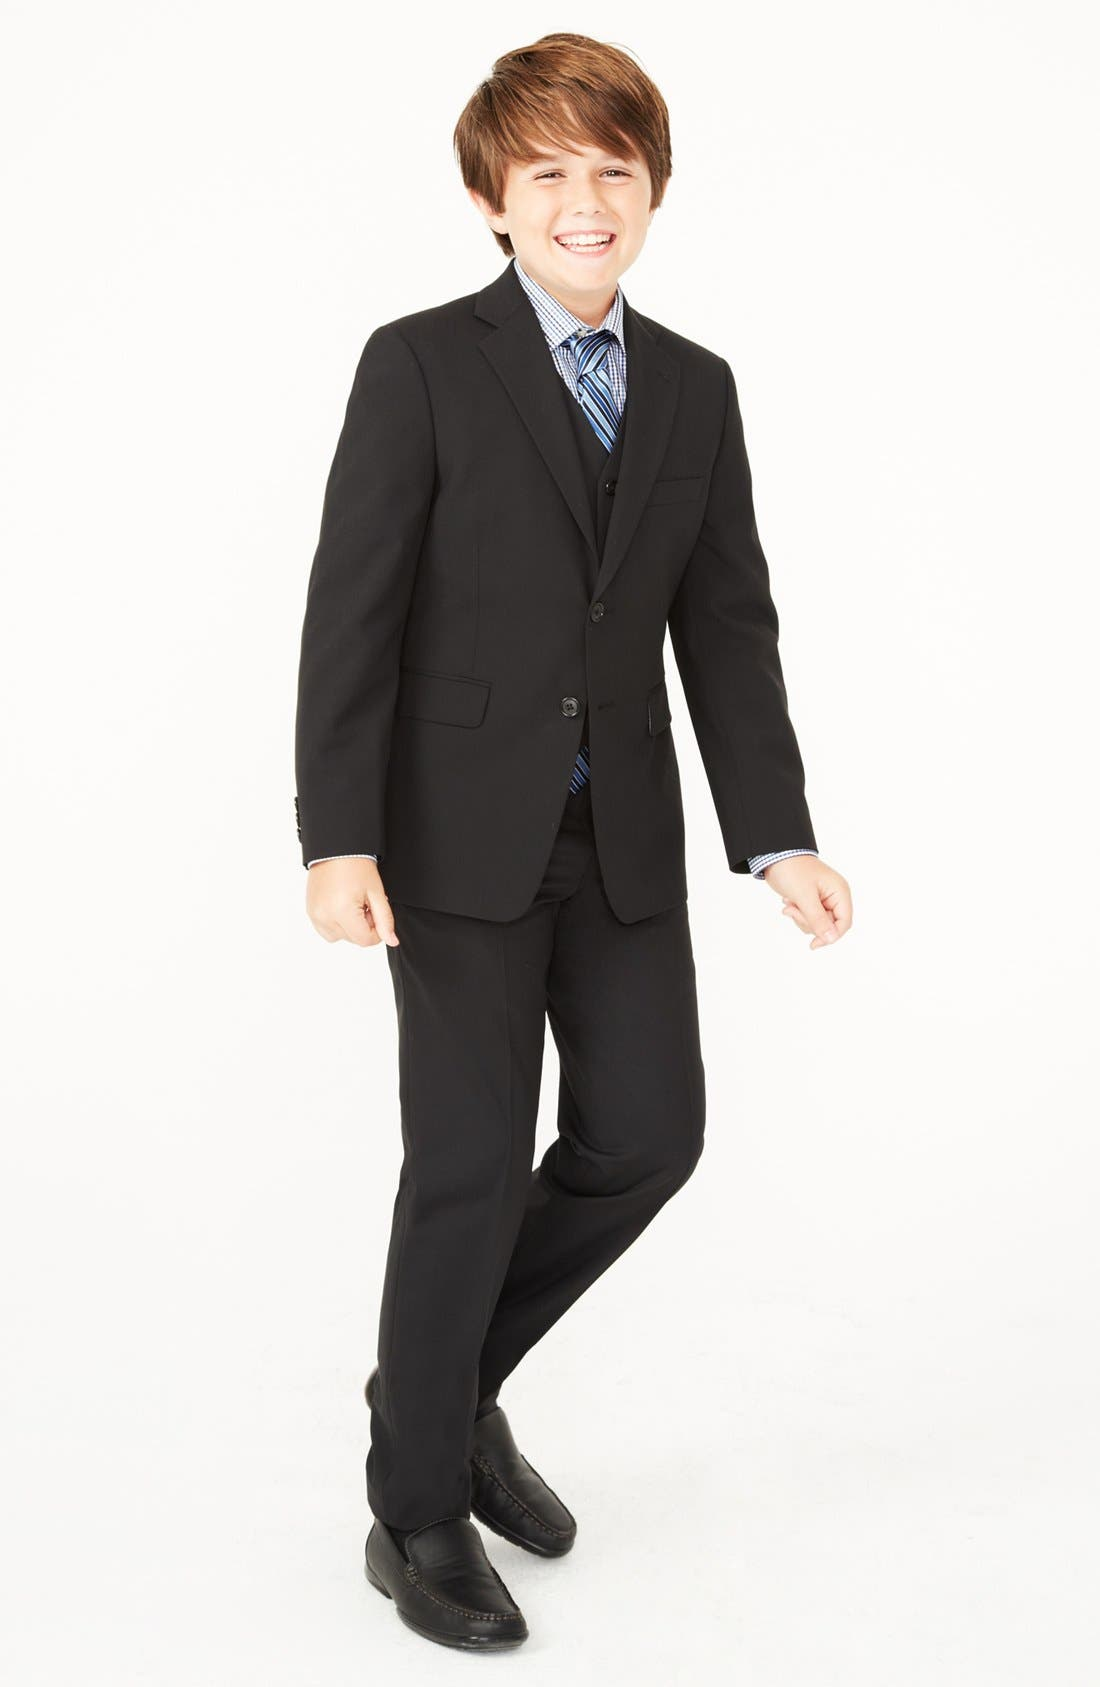 Main Image - Joseph Abboud Blazer, Dress Shirt & Dress Pants (Little Boys & Big Boys)